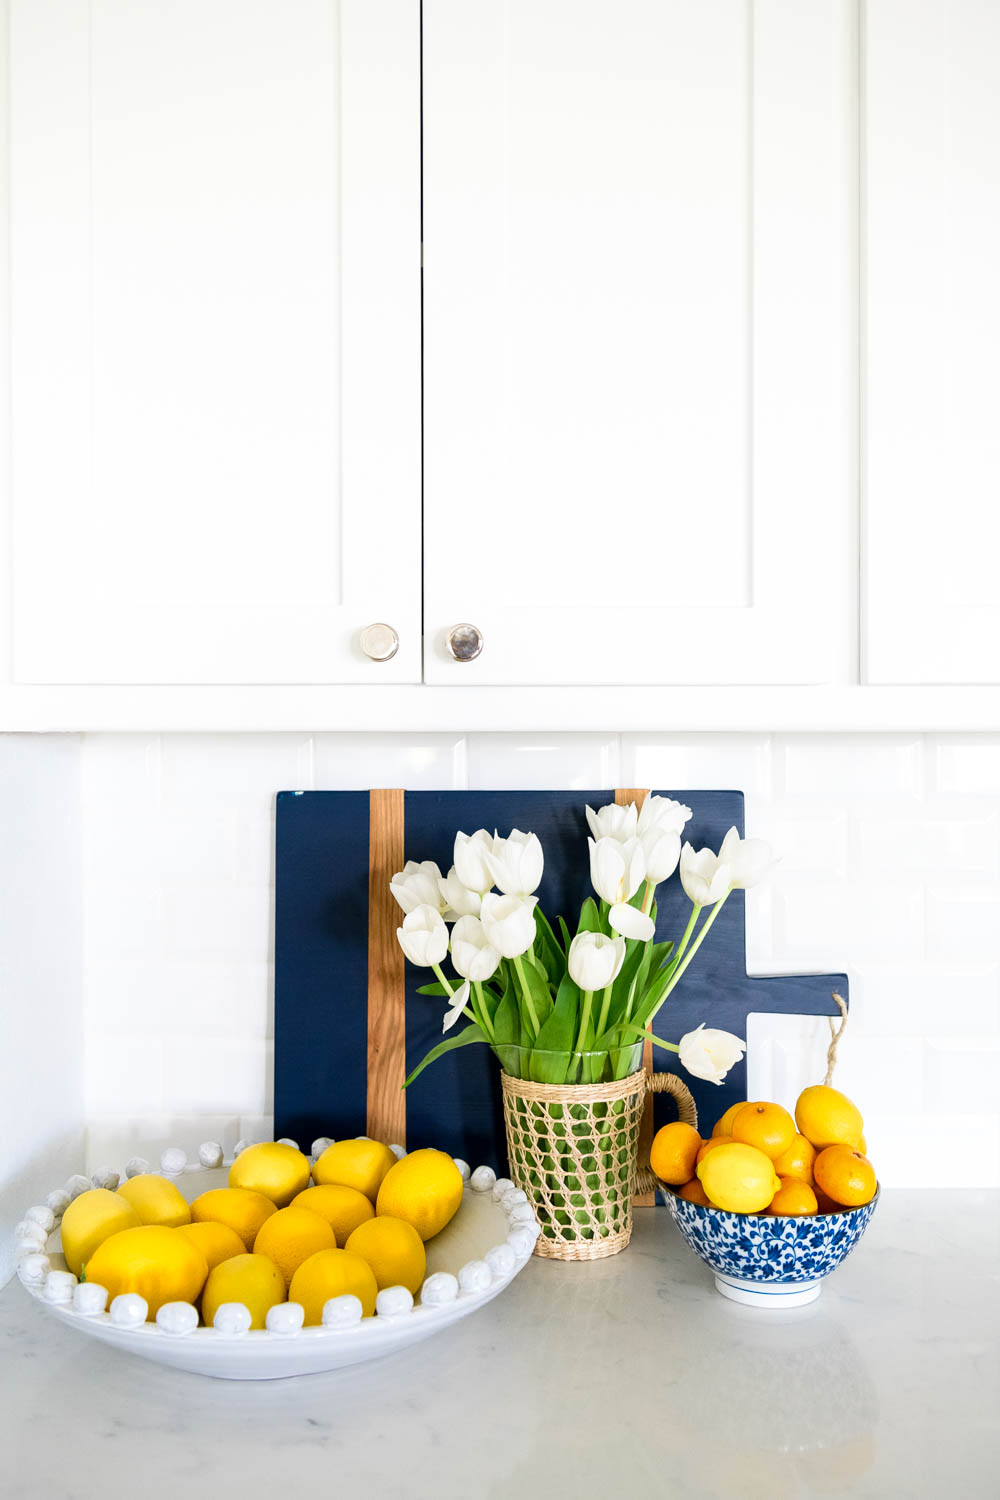 Add a bowl of fruit for color, blue and white bowl, tulips, cutting boards. #ABlissfulNest #kitchendecor #whitekitchen